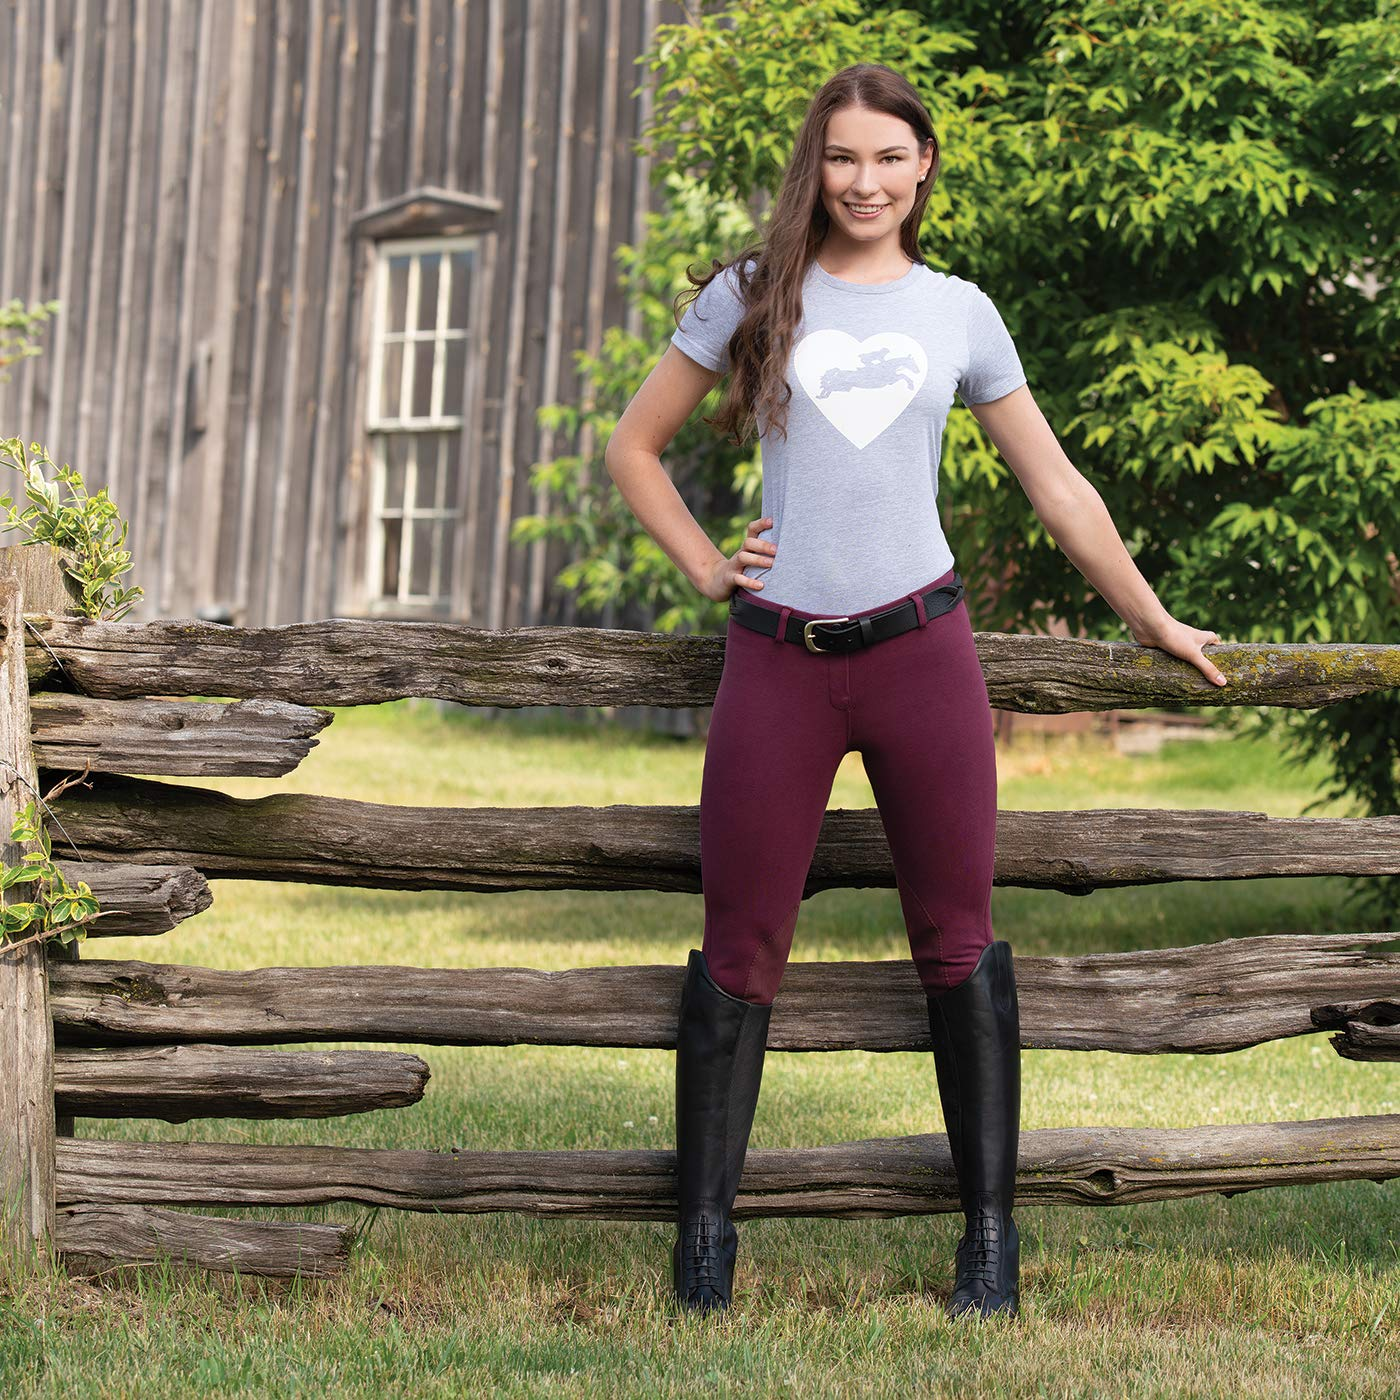 Easy Pull-On Equestrian Riding Pants ELATION Riding Breeches for Women Red Label